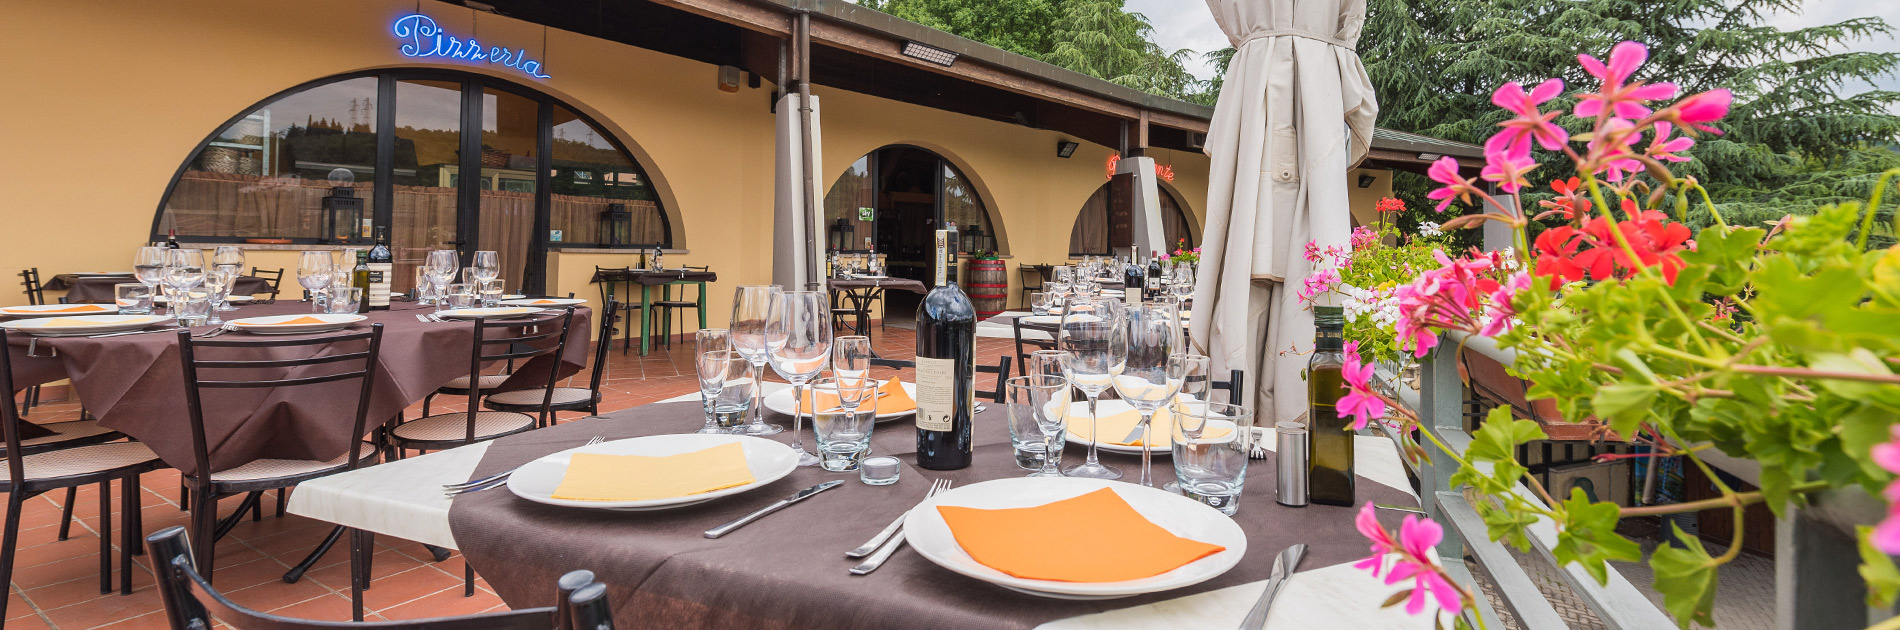 Camping Il Poggetto - Pizzarestaurant